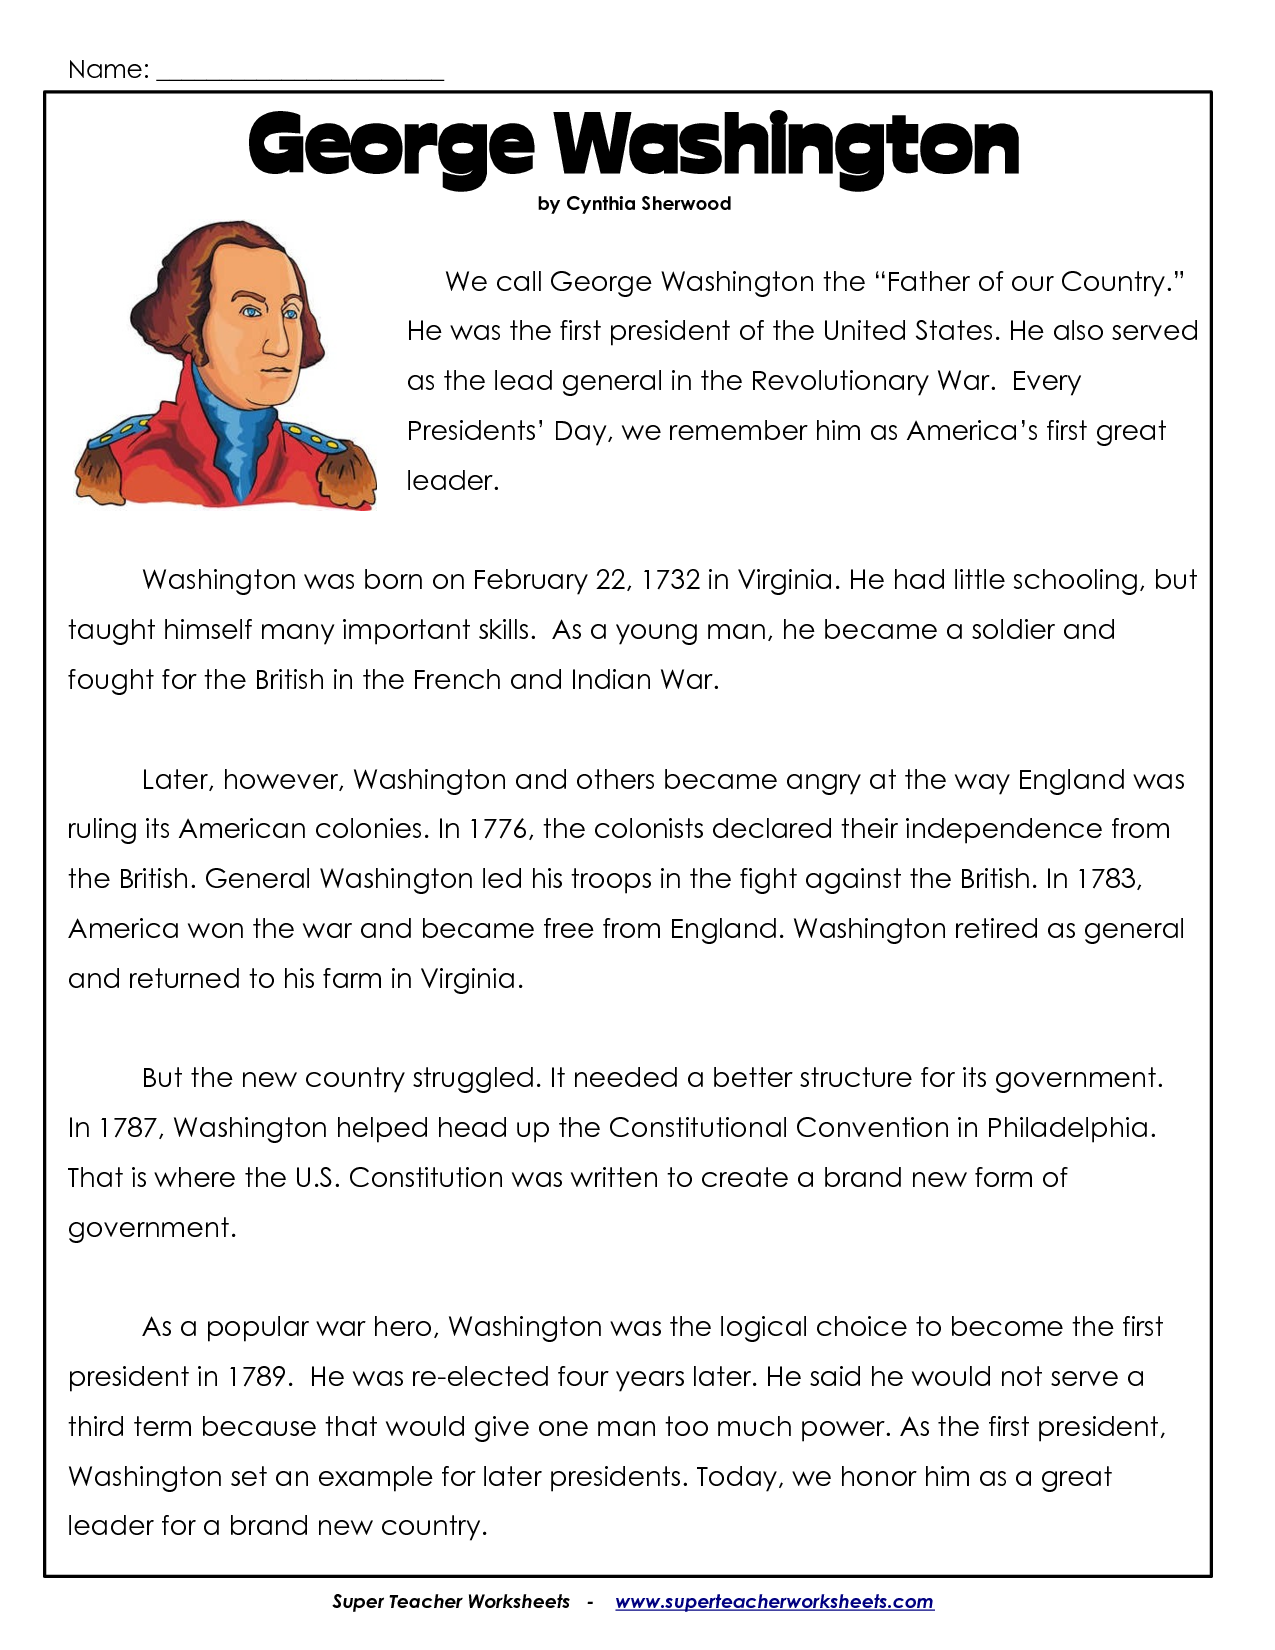 worksheet George Washington Worksheets presidents day coloring worksheet george washington worksheets worksheets